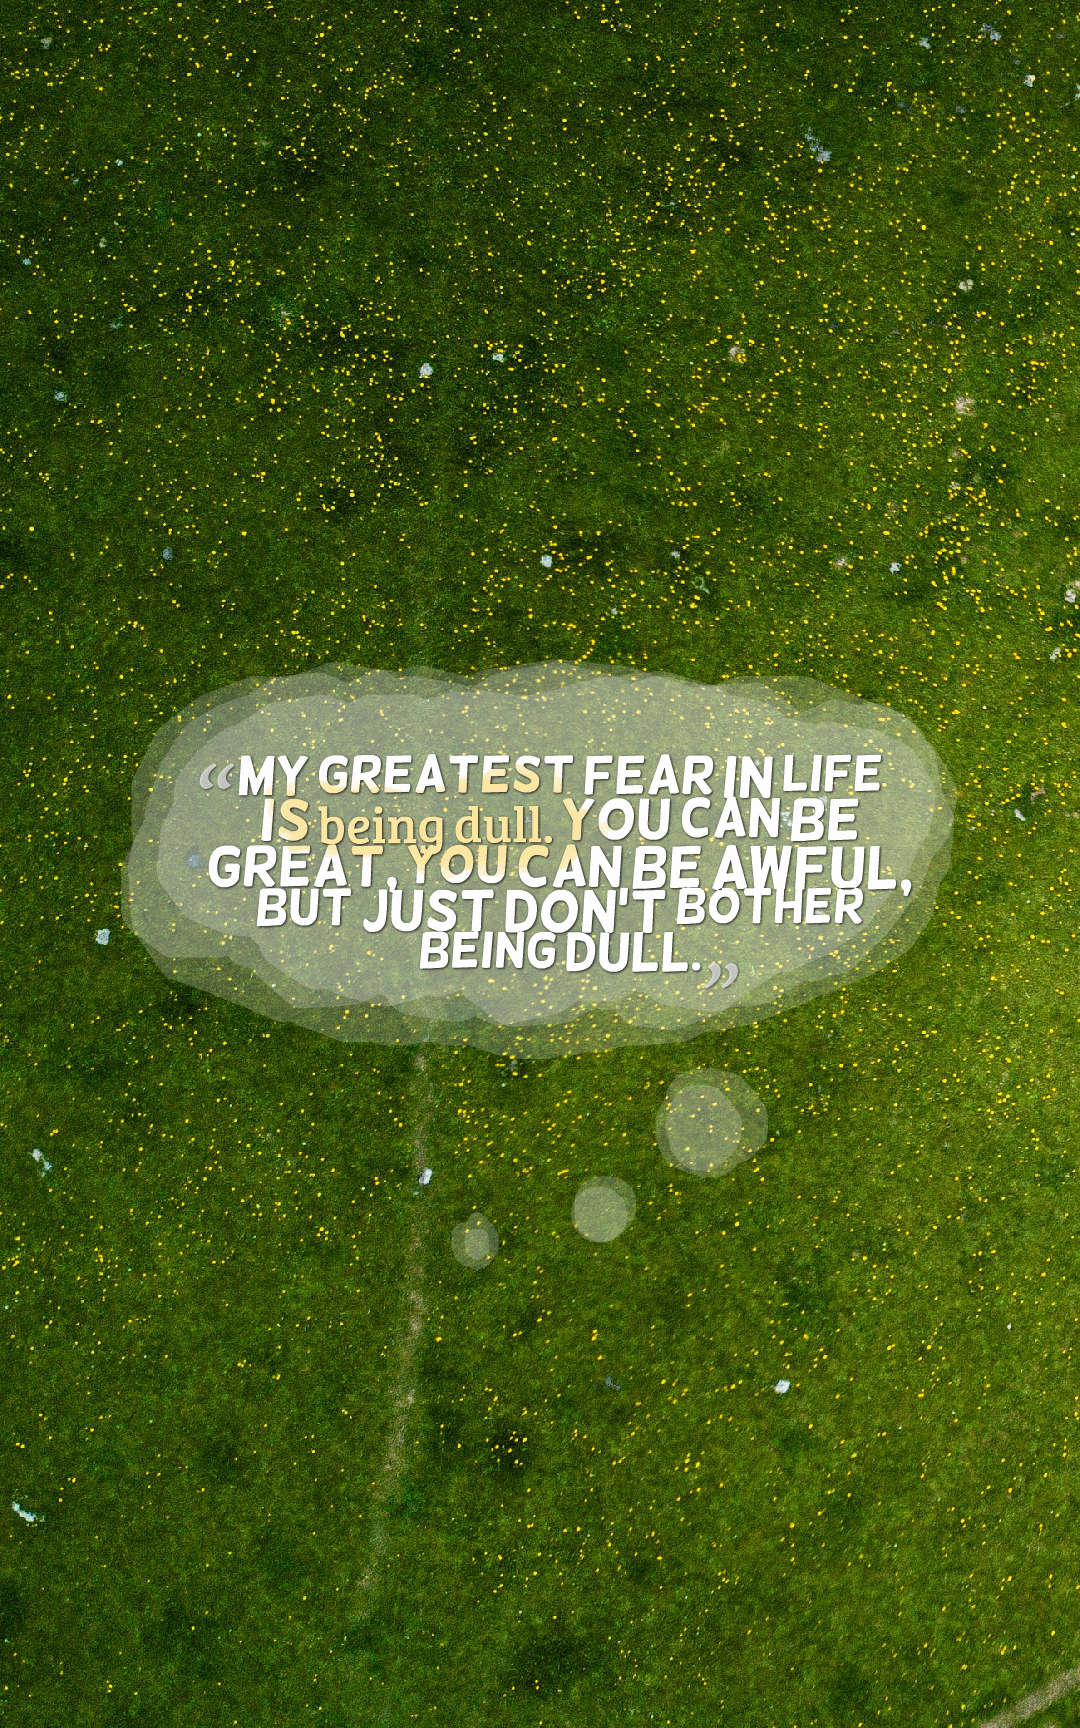 Quotes image of My greatest fear in life is being dull. You can be great, you can be awful, but just don't bother being dull.